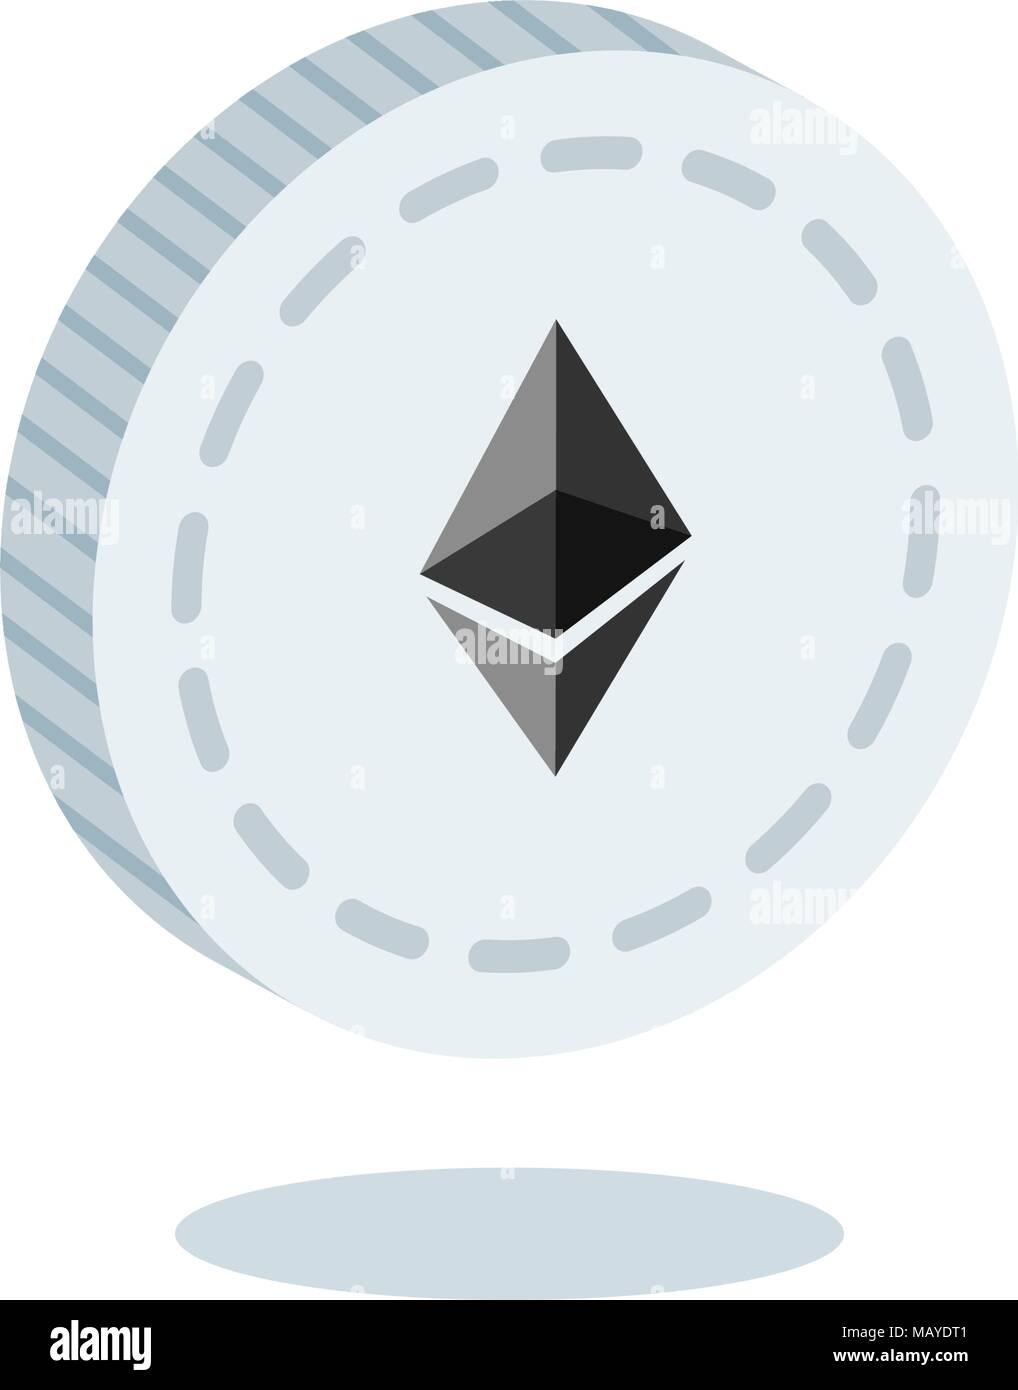 Isometric 3d Ethereum Cryptocurrency Blockchain Flat Icon Use For Logos Print Products Page And Web Decor Or Other Design